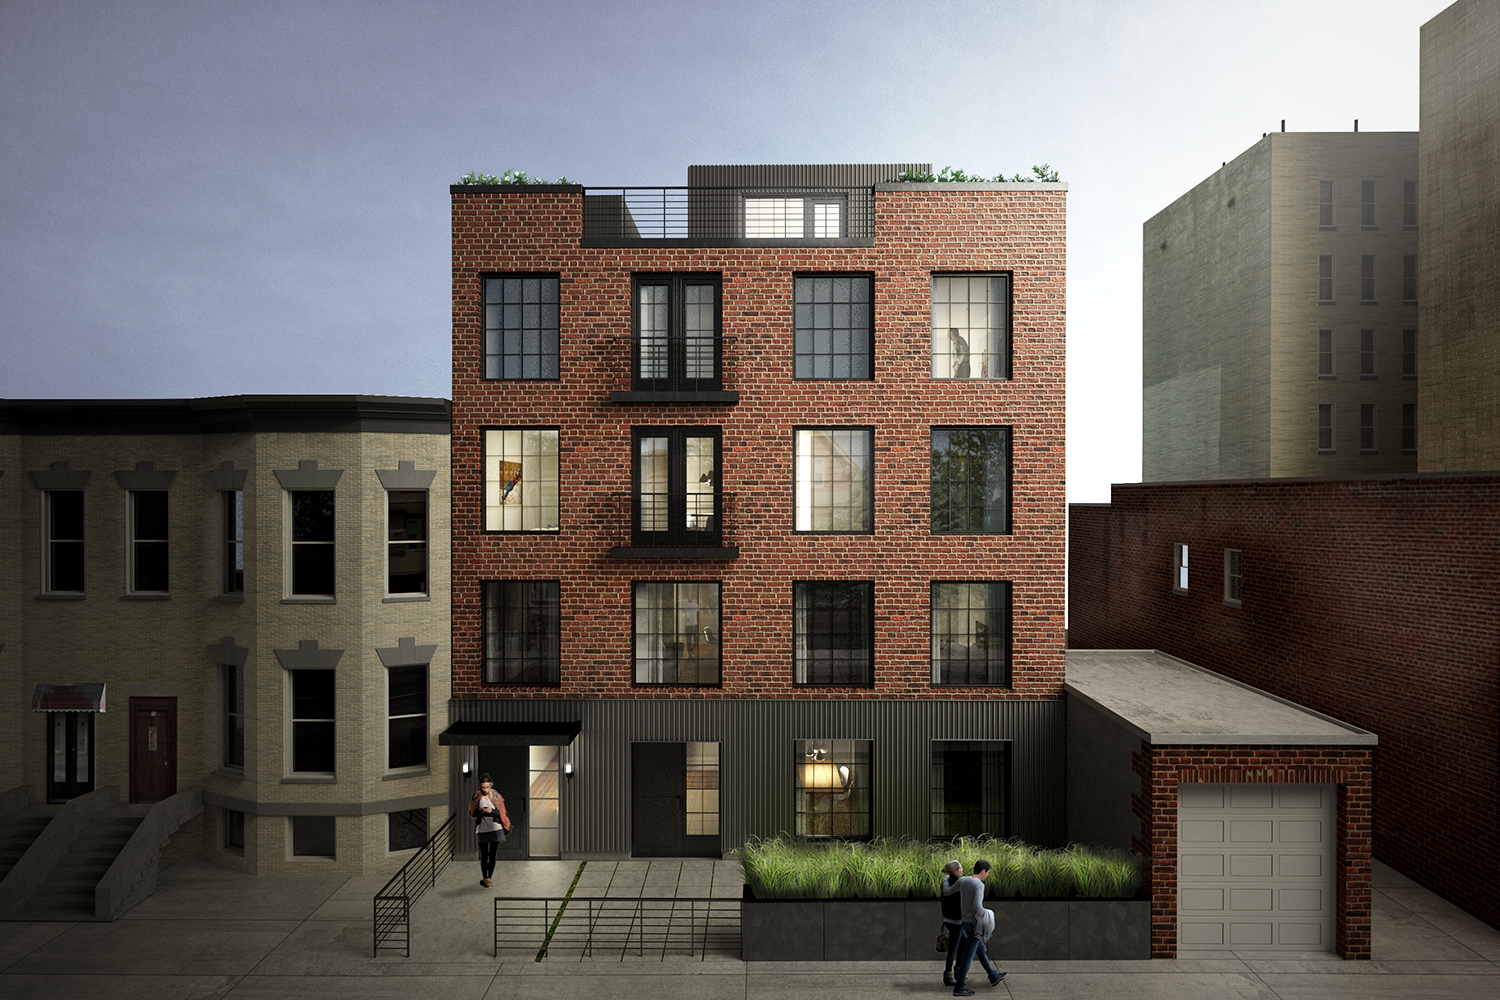 19 East 31st Street, rendering by Andy McGee Design